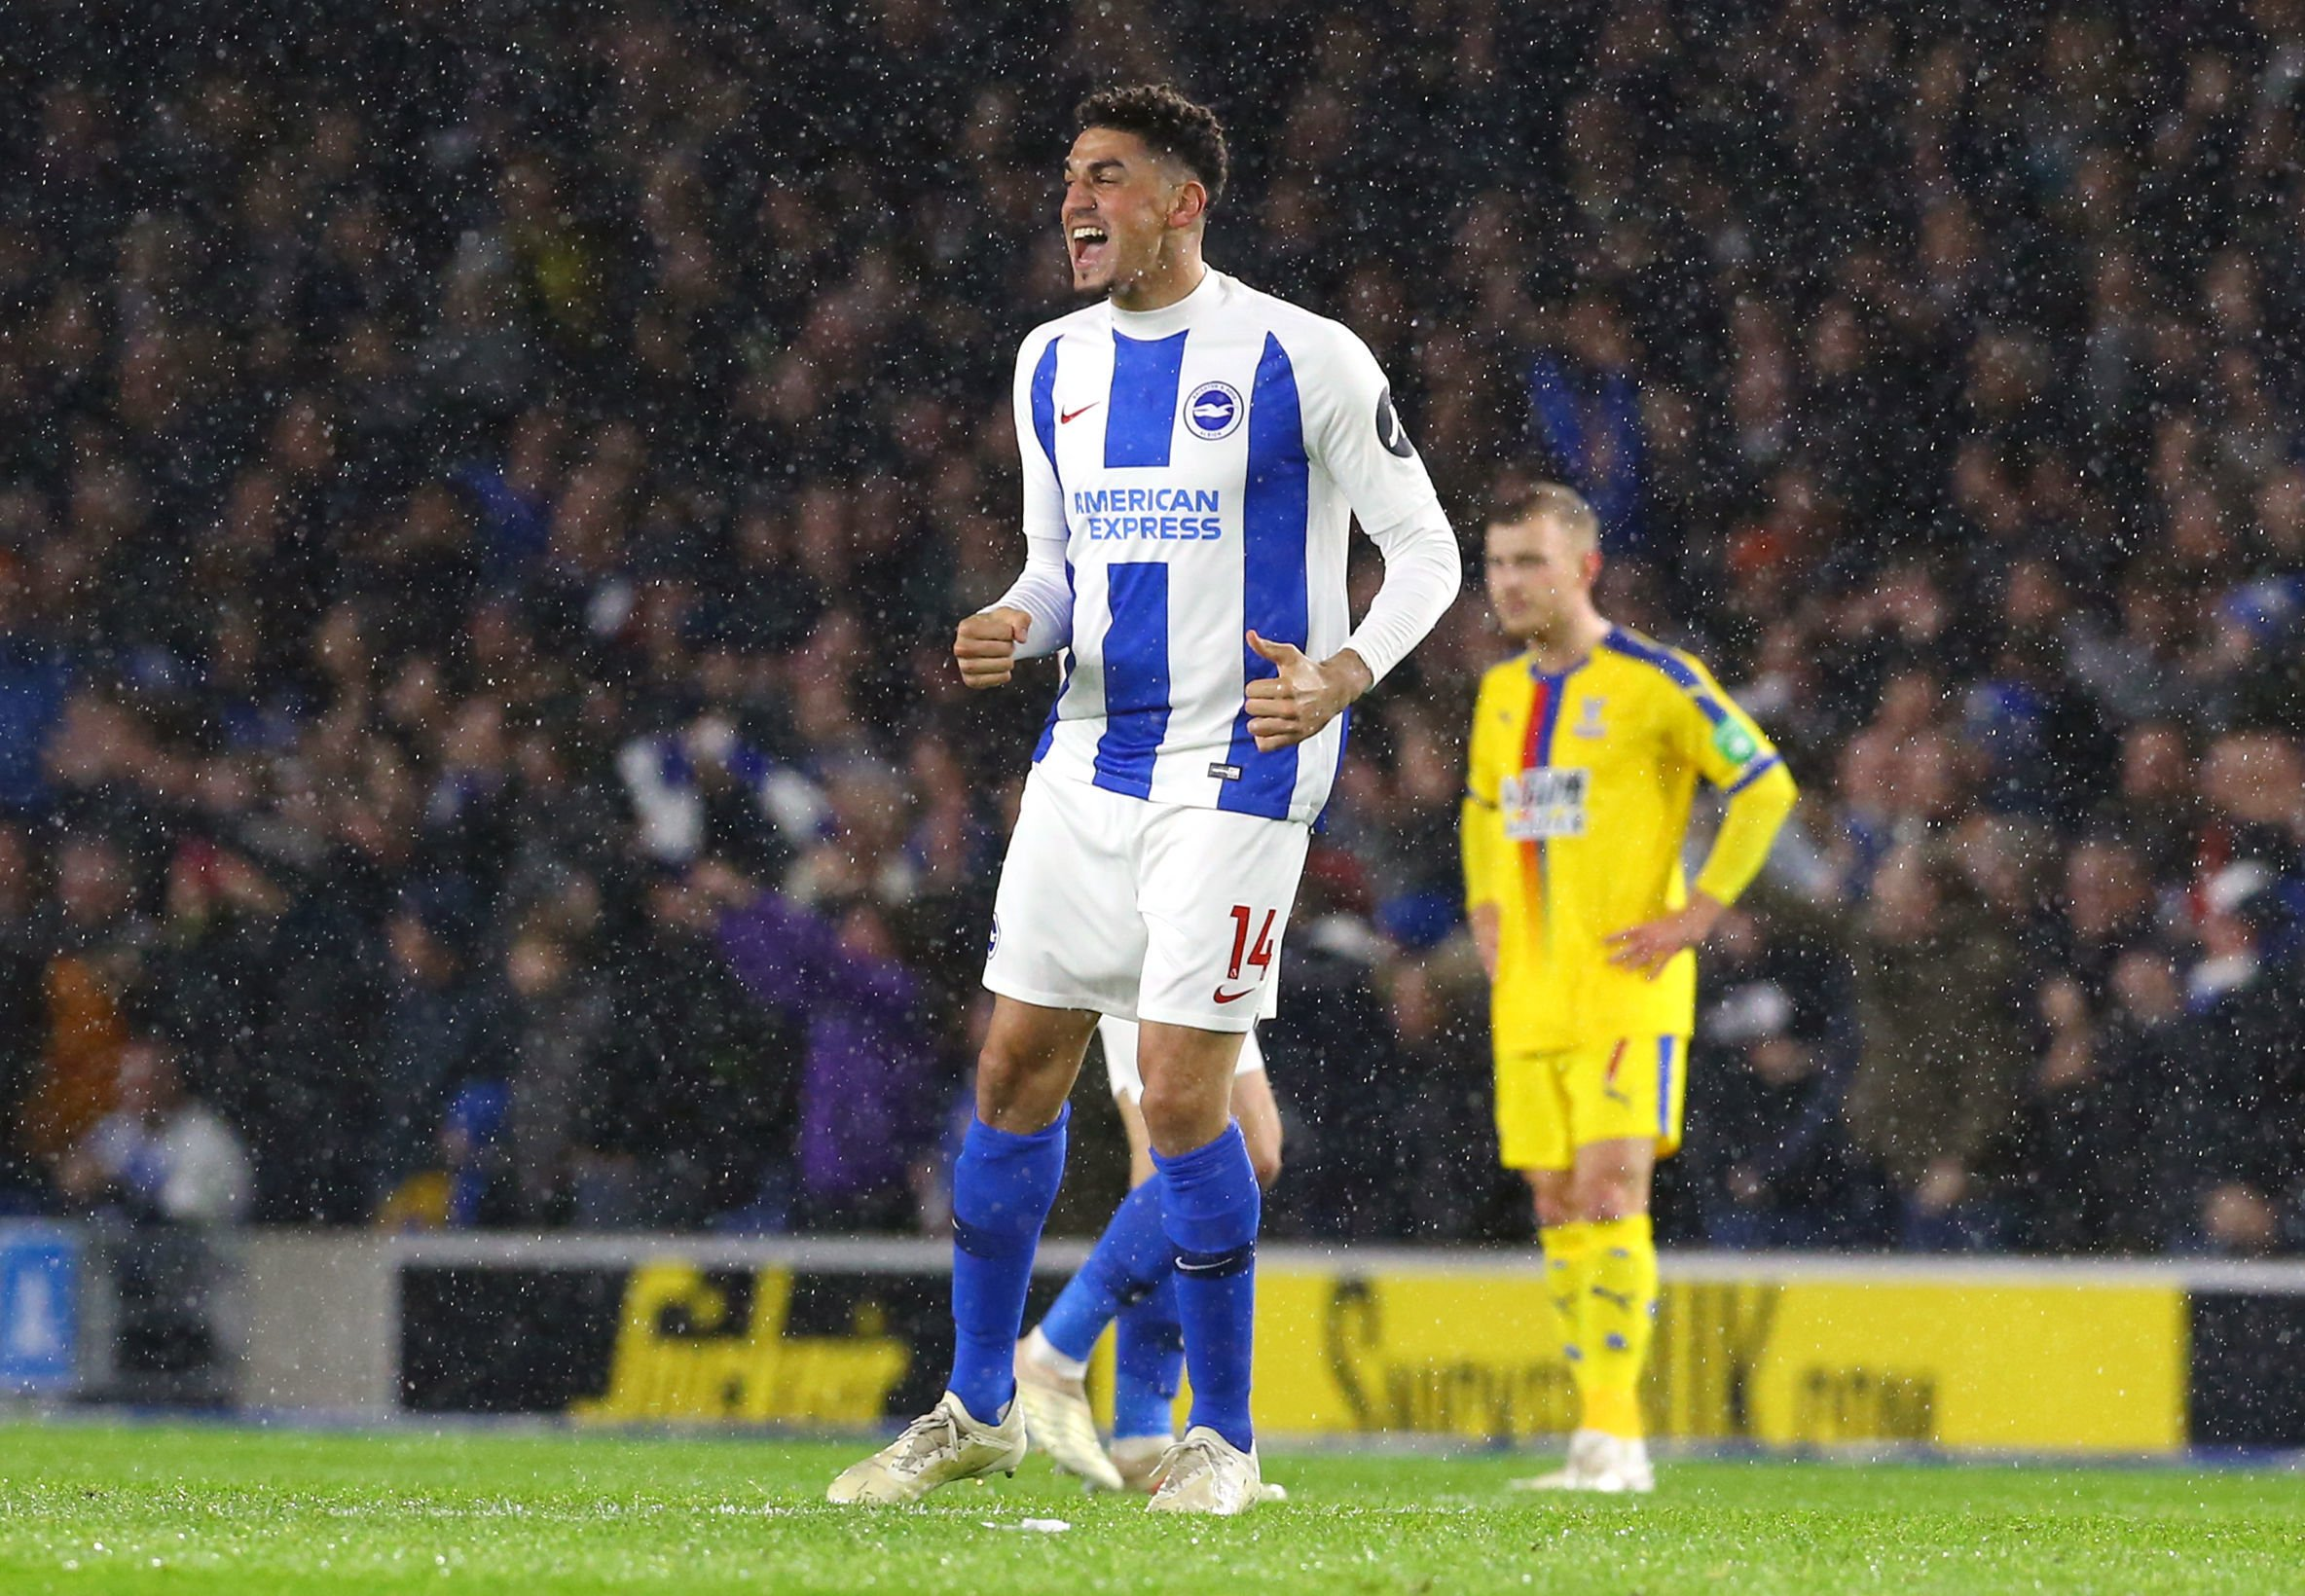 Albion's Balogun set for a watching brief in cup semi-final